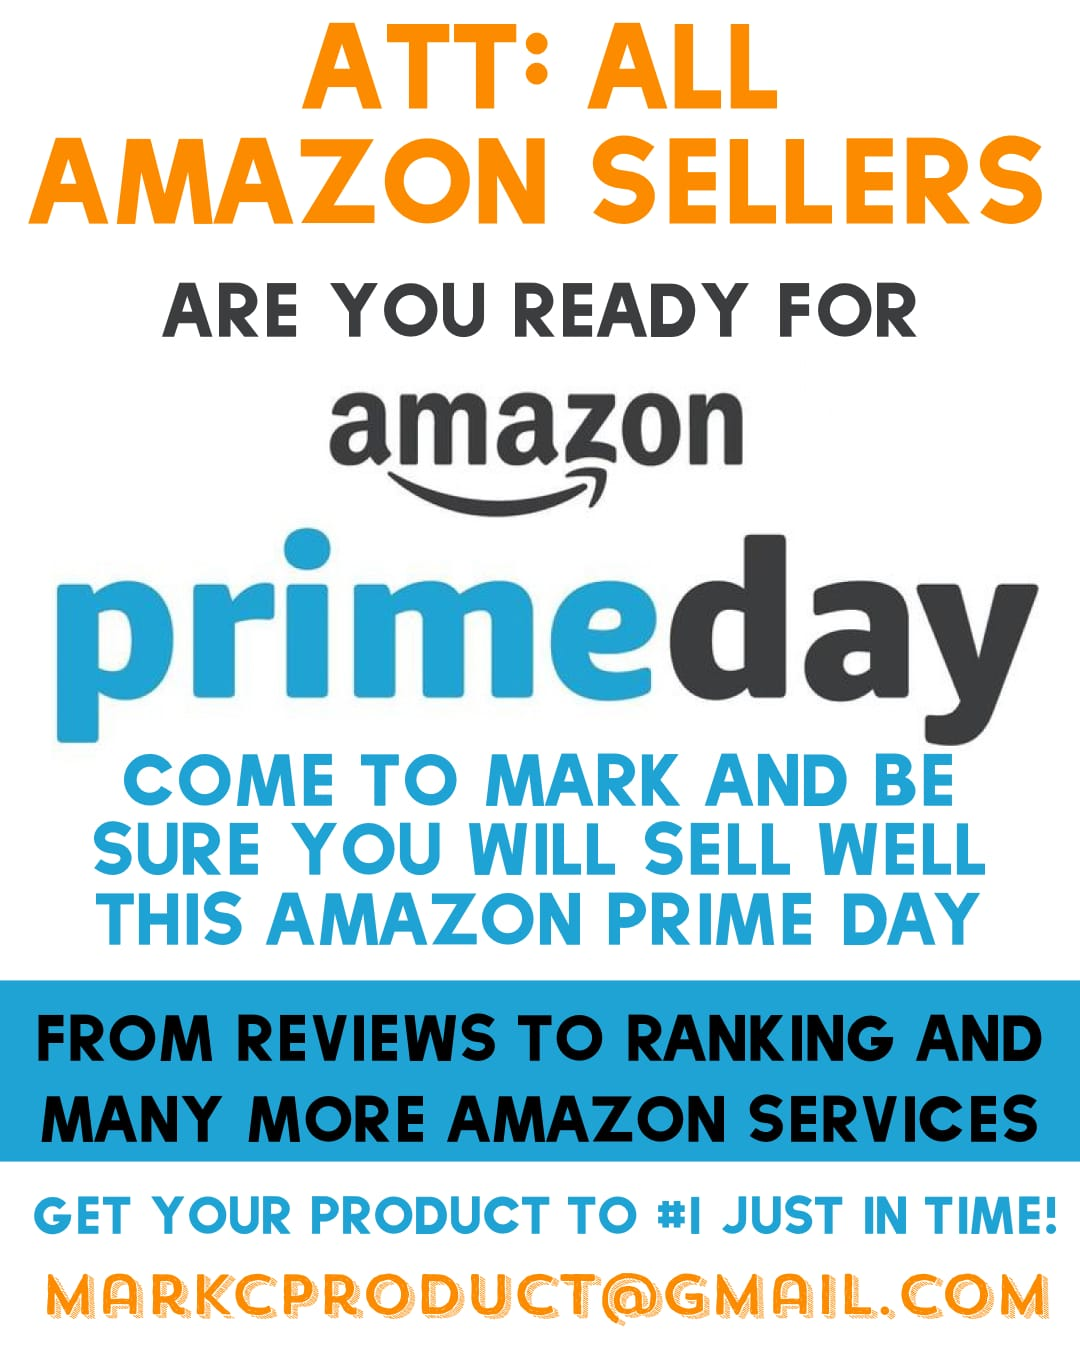 Sy Deals Making Deal Sites Great Again Attention Amazon Sellers Are You Ready For Prime Day Find Out How To Sell Well This Prime Day